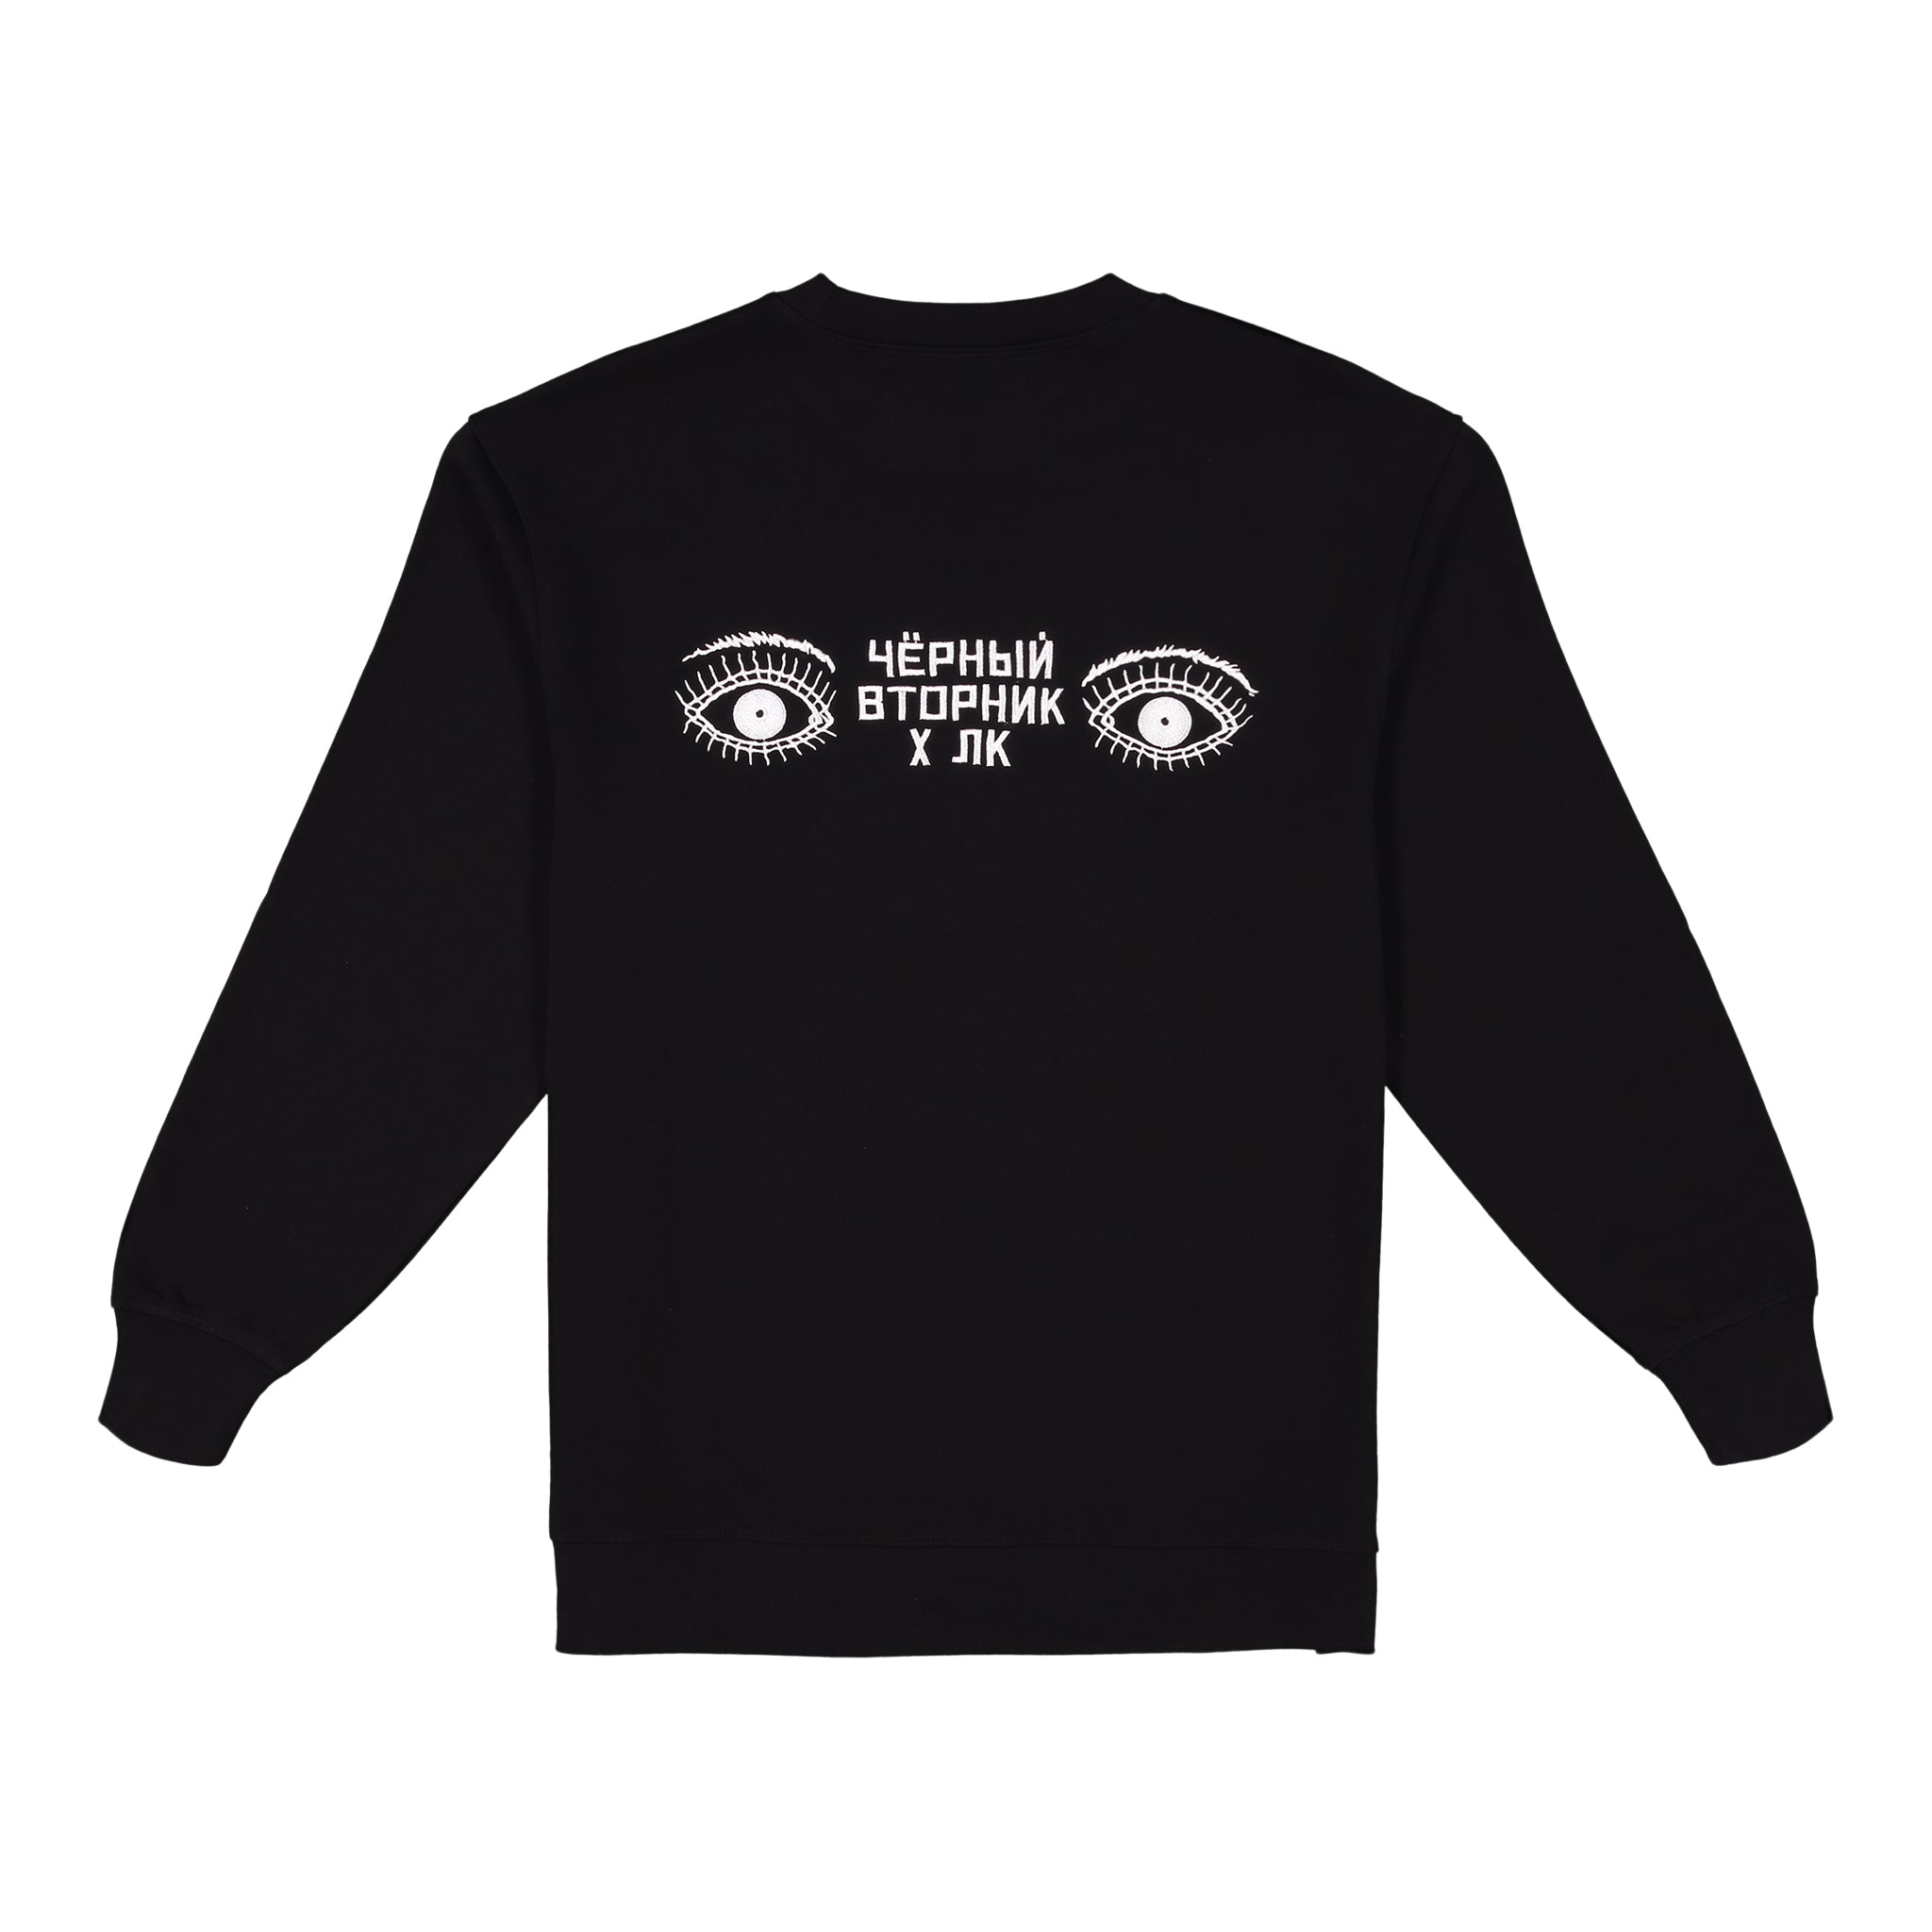 Cotton Crewneck Sweatshirt